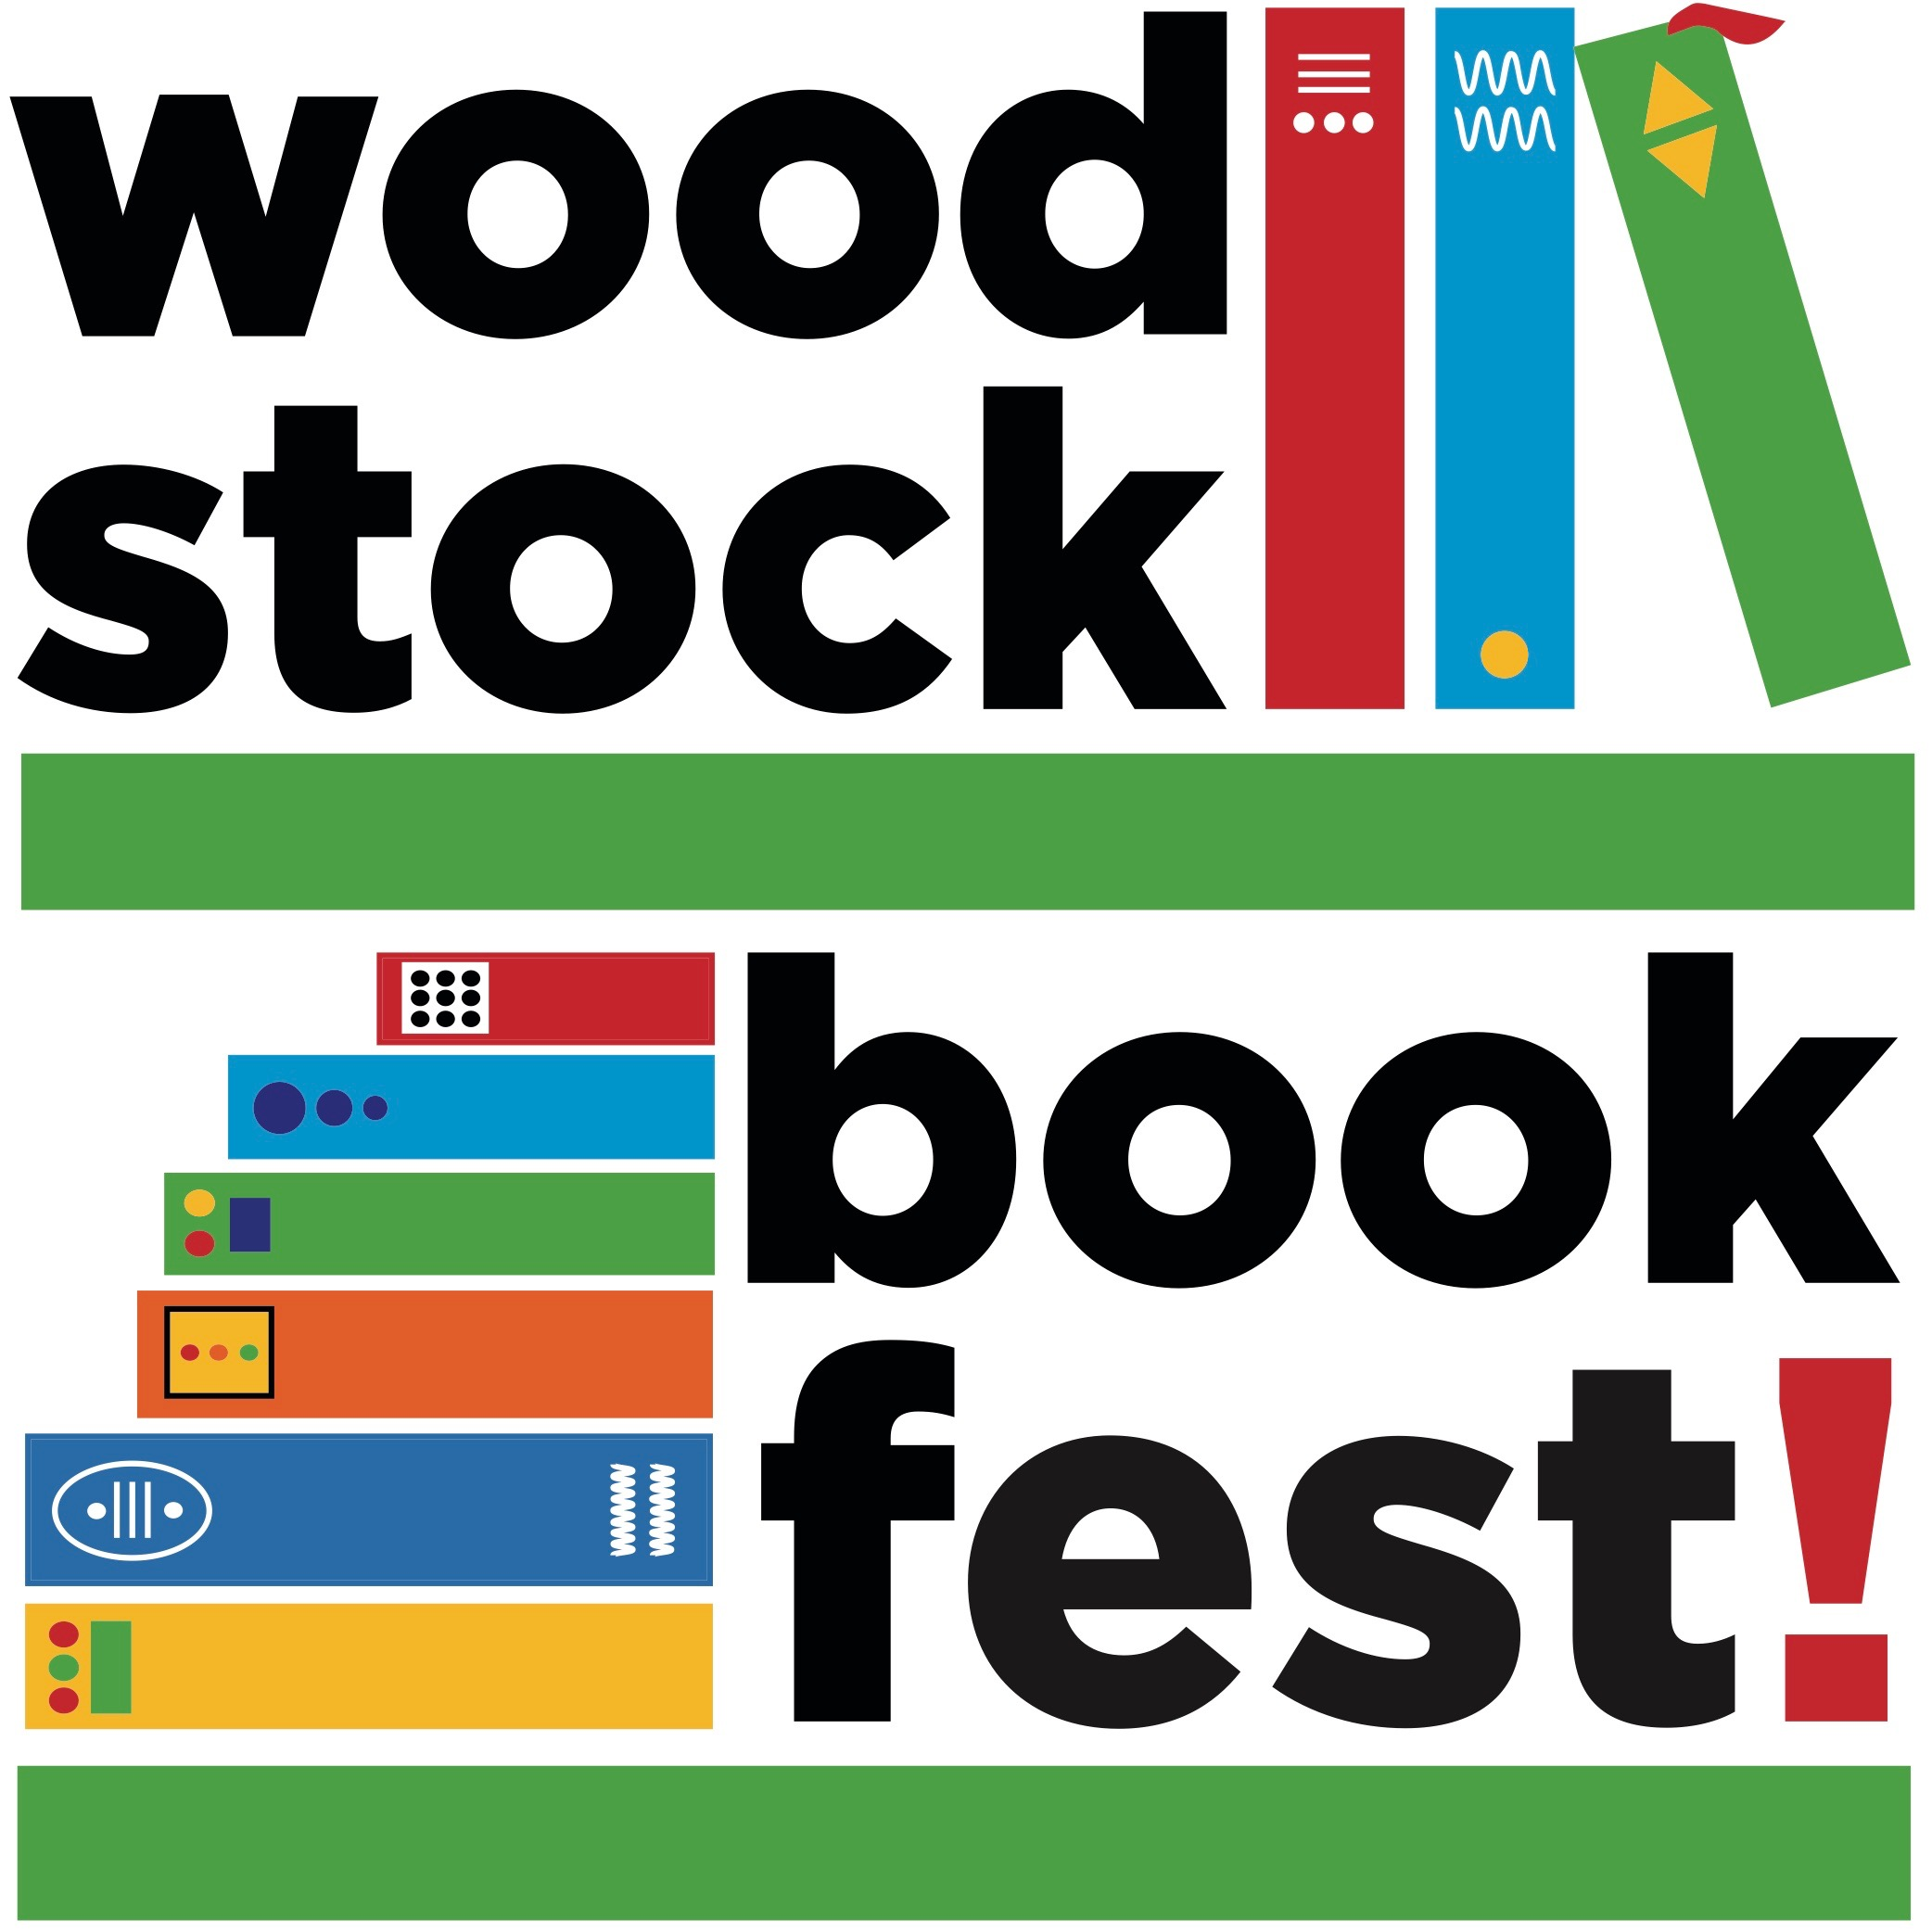 WOODSTOCK BOOKFEST